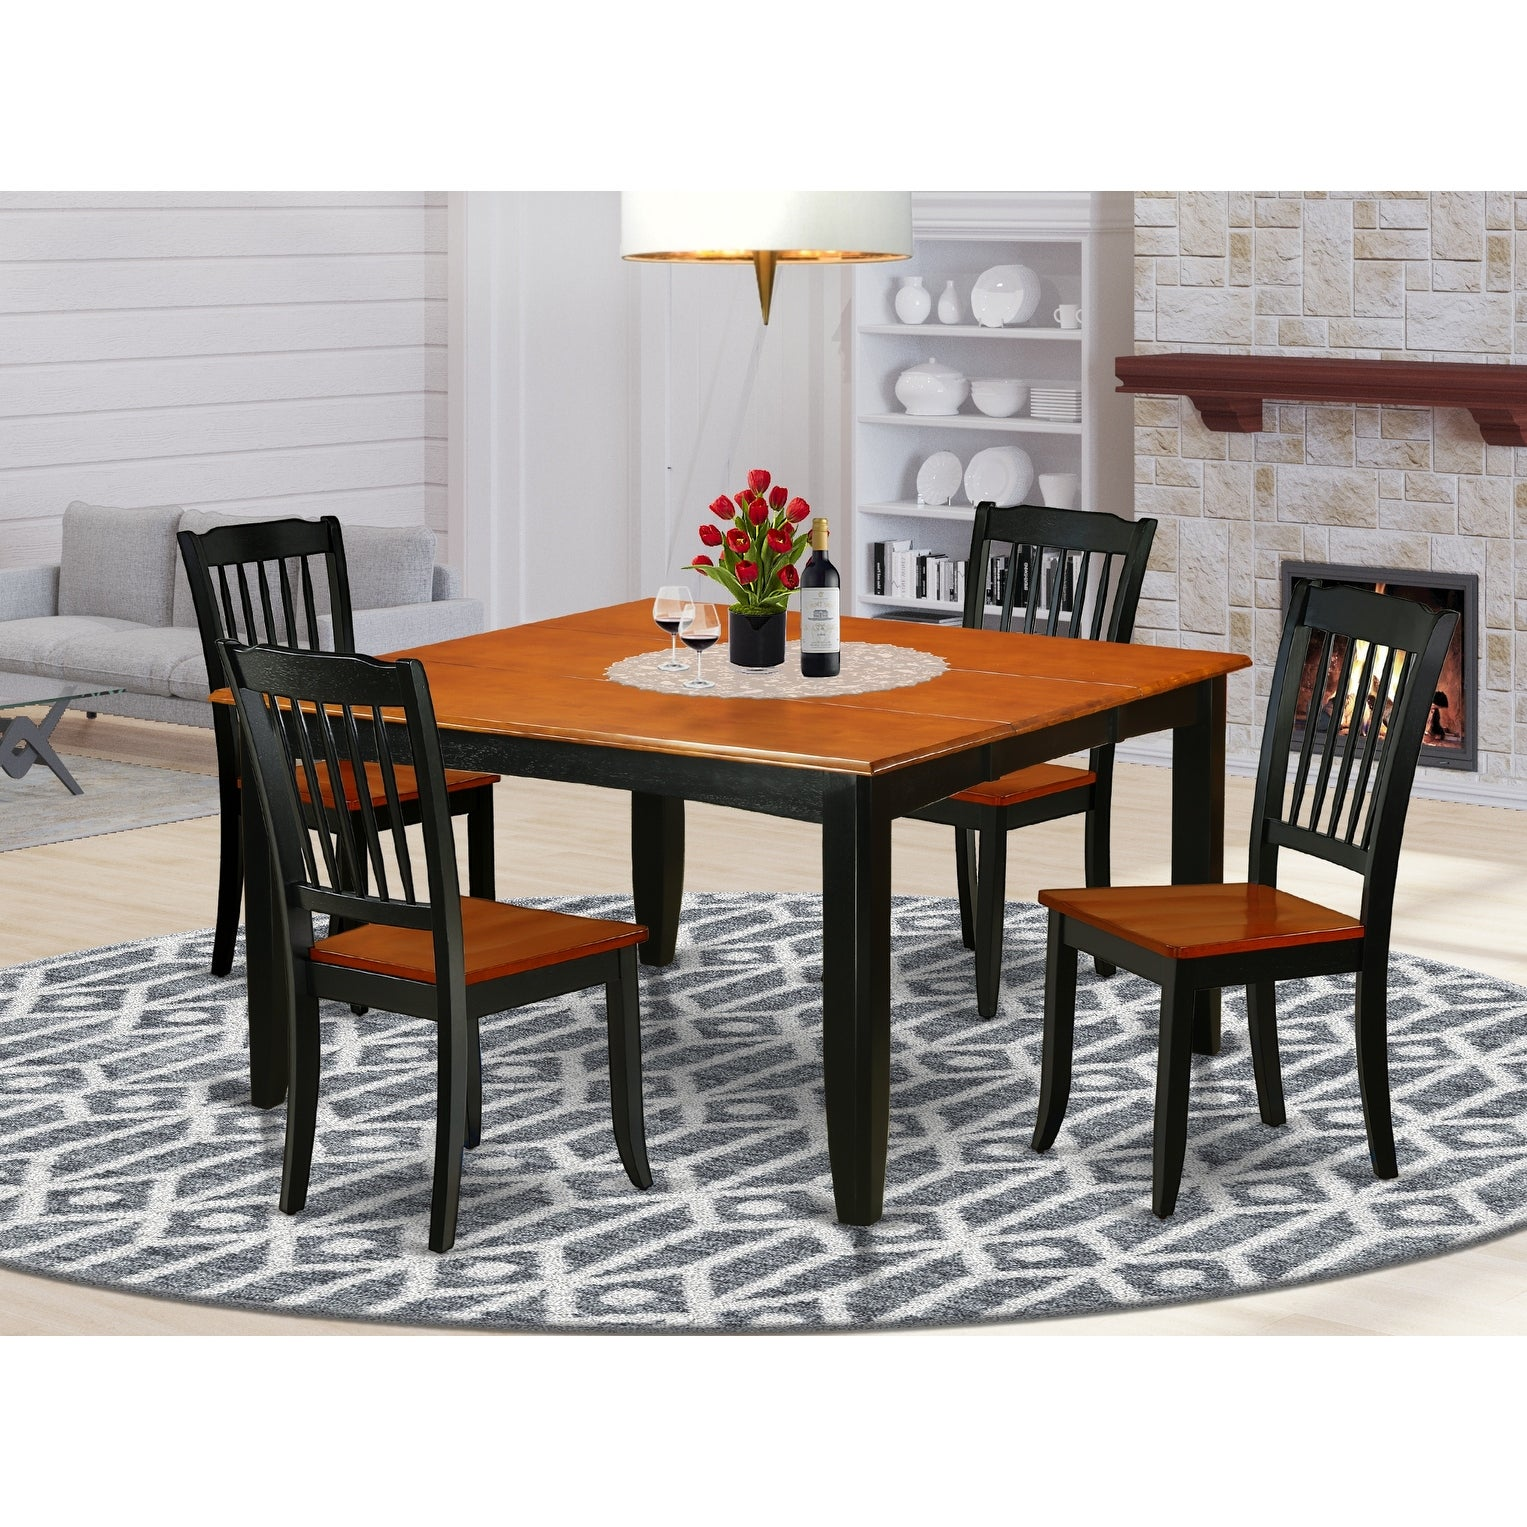 Square 36 54 Inch Table With 18 Leaf And 4 Vertical Slatted Chairs Number Of Chairs Option Overstock 28480013 9 Piece Sets 8